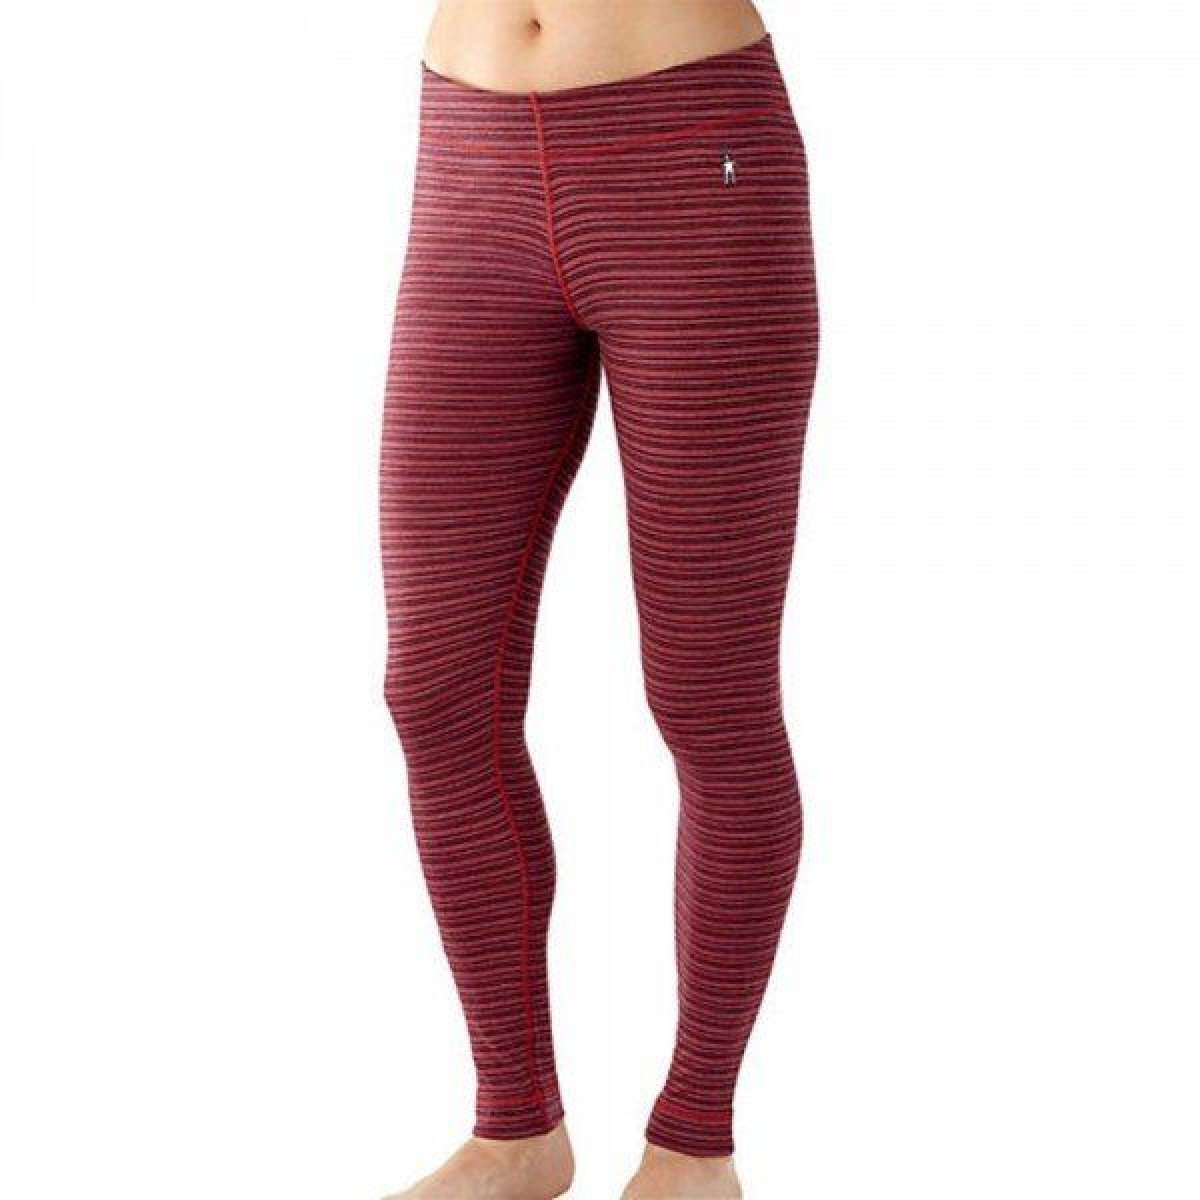 Термоштаны Smartwool Women's Merino 250 Baselayer Pattern Bottom Hibiscus Heather SW SS227.488 SW SS227.488-M